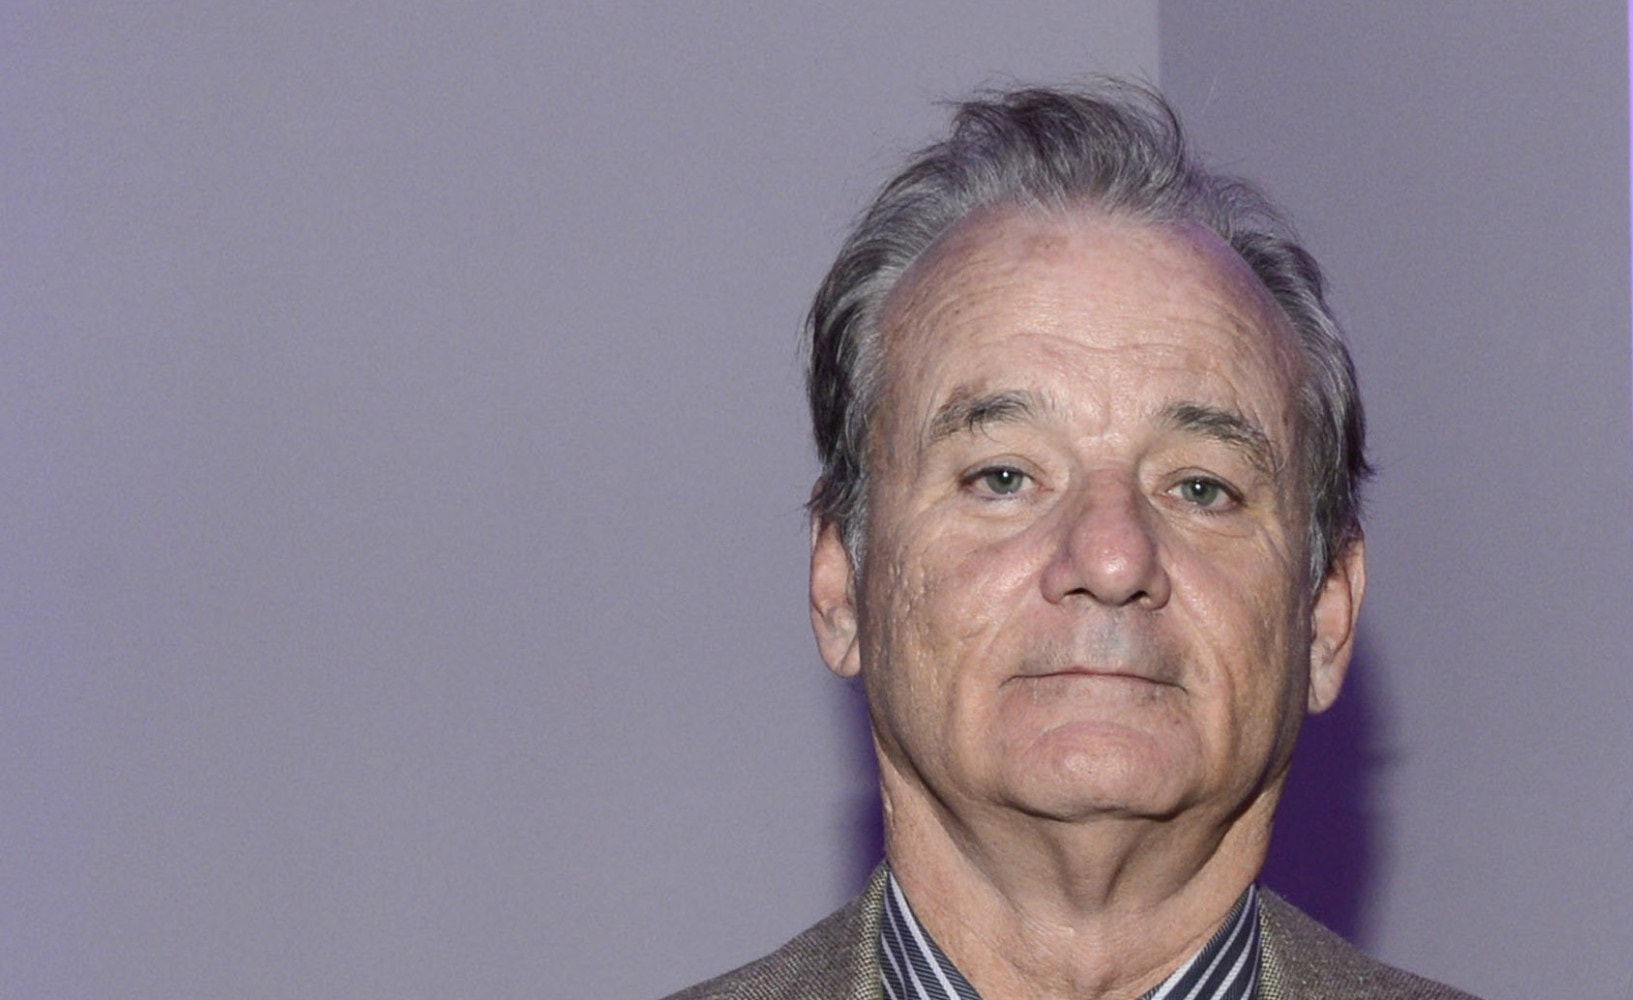 Bill Murray Widescreen for desktop